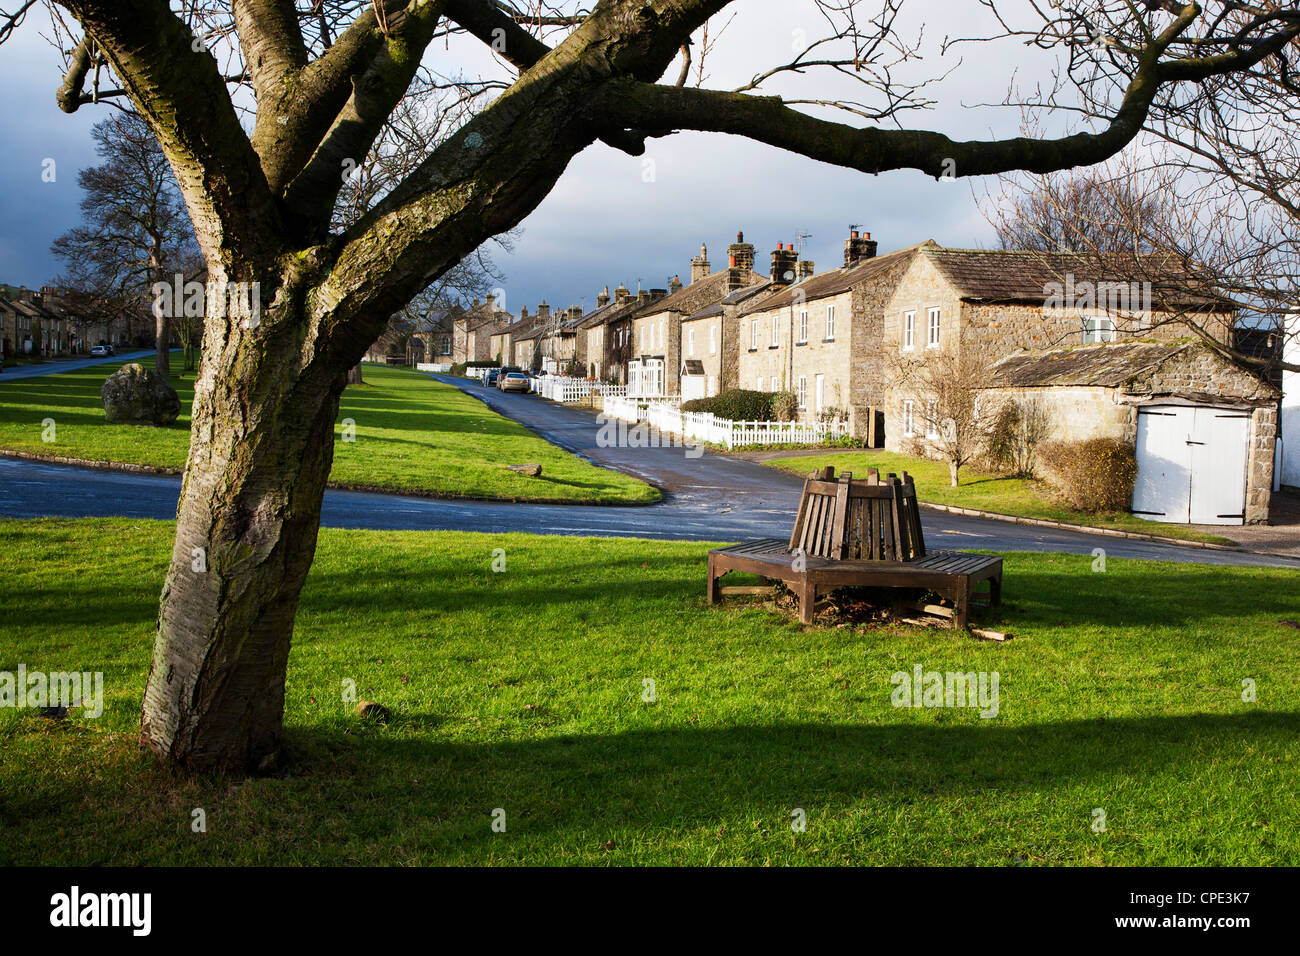 The Village Green at East Witton, North Yorkshire, Yorkshire, England, United Kingdom, Europe - Stock Image